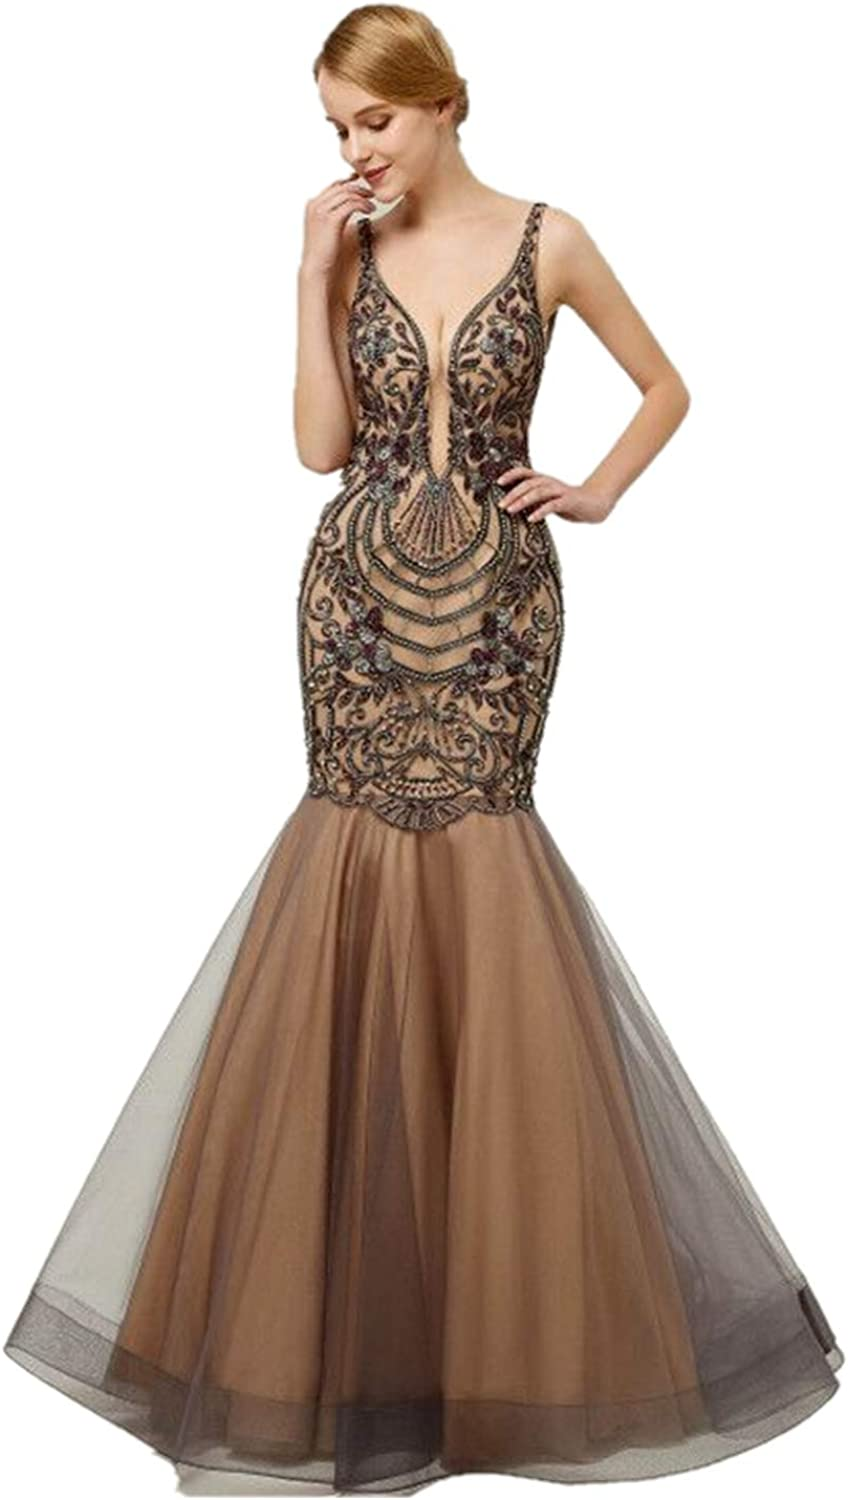 Darcy74Dulles Women's Mermaid Sequins Long Formal Prom Gowns Sexy Beading Evening Dresses